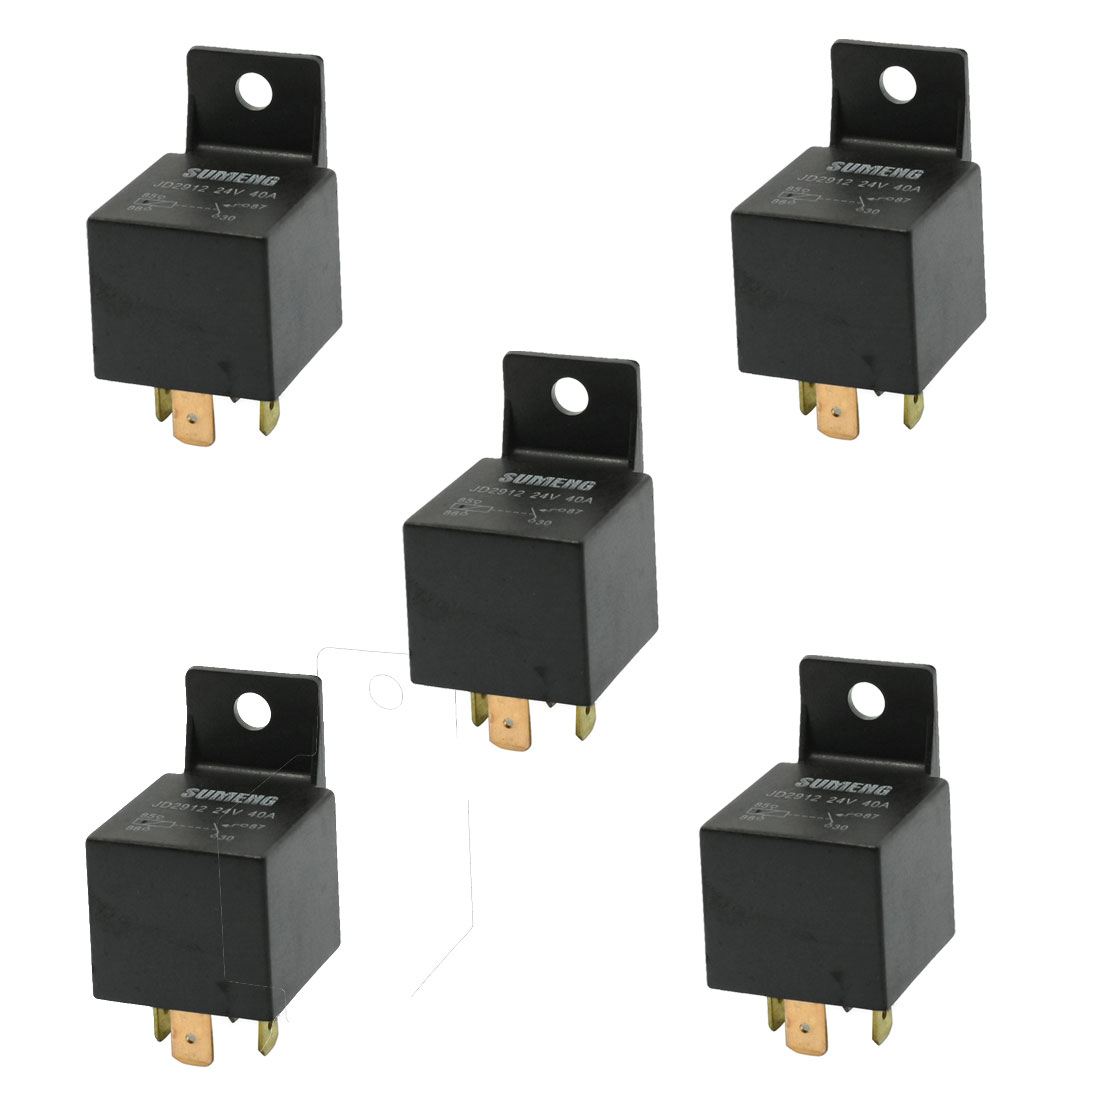 5 Pcs Insulation Housing Car Relay 4 Pin Terminals 1NC SPST 24VDC 40A